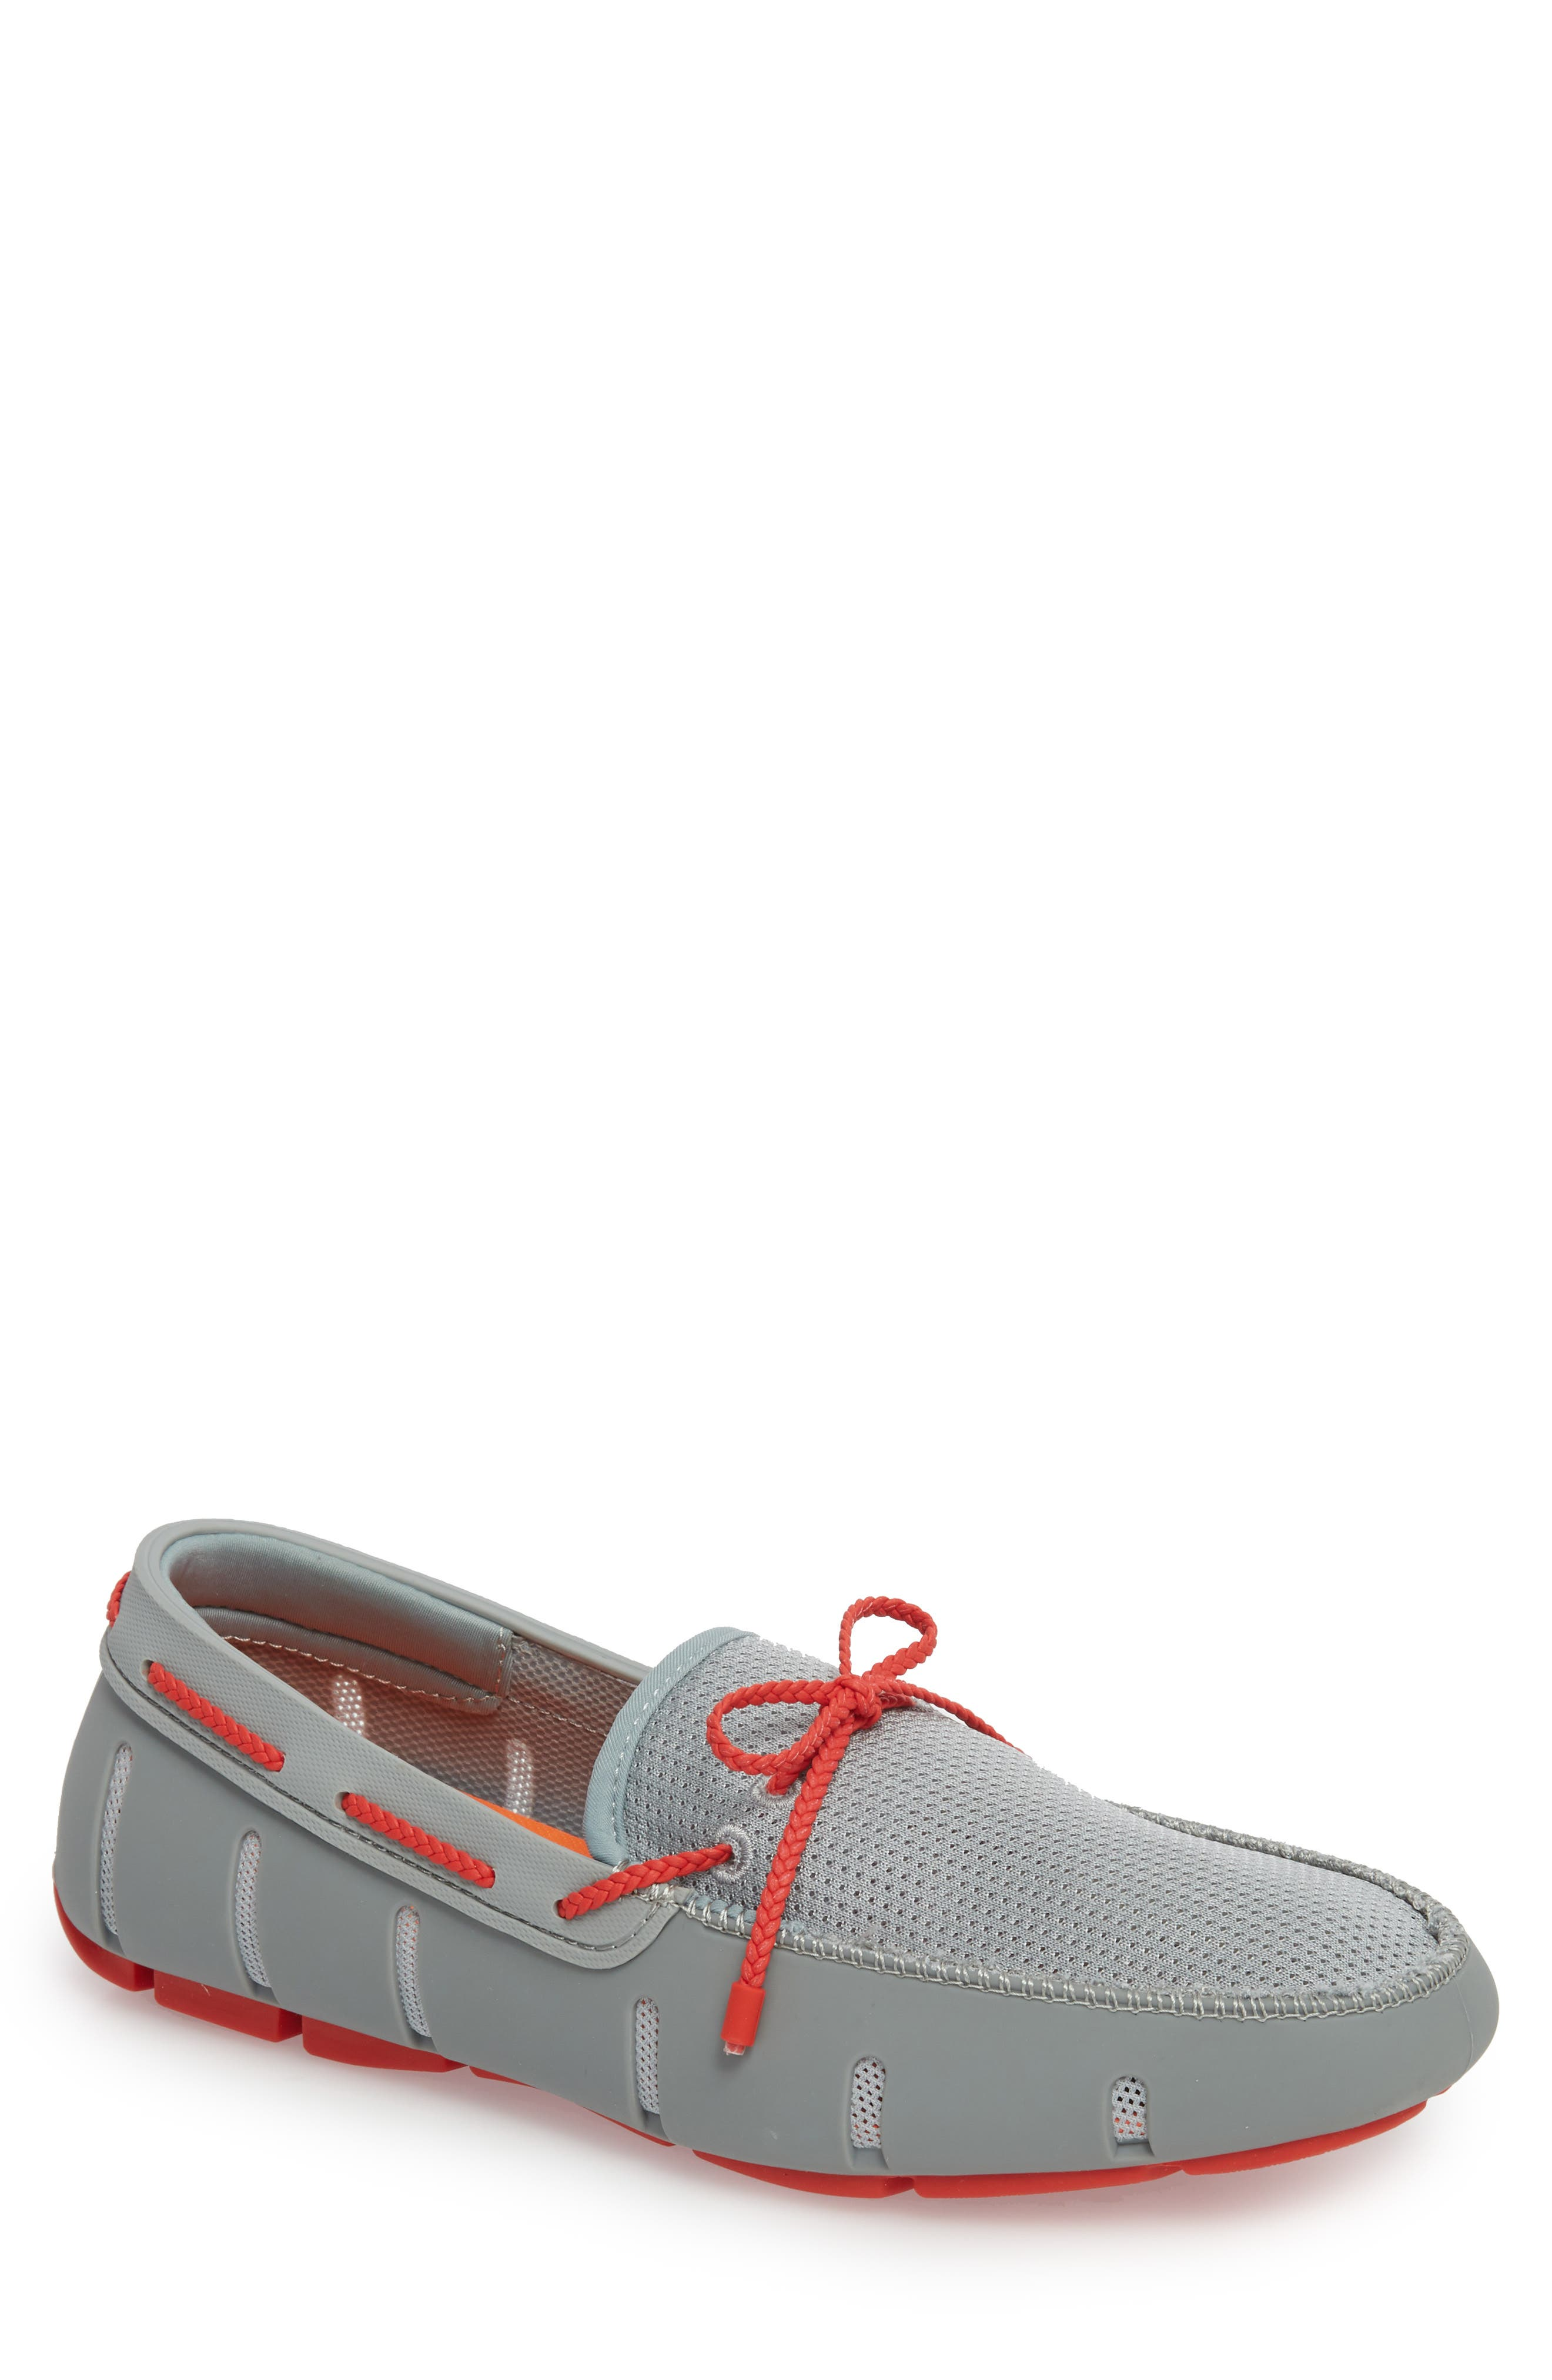 Swims Lace Loafer, Green